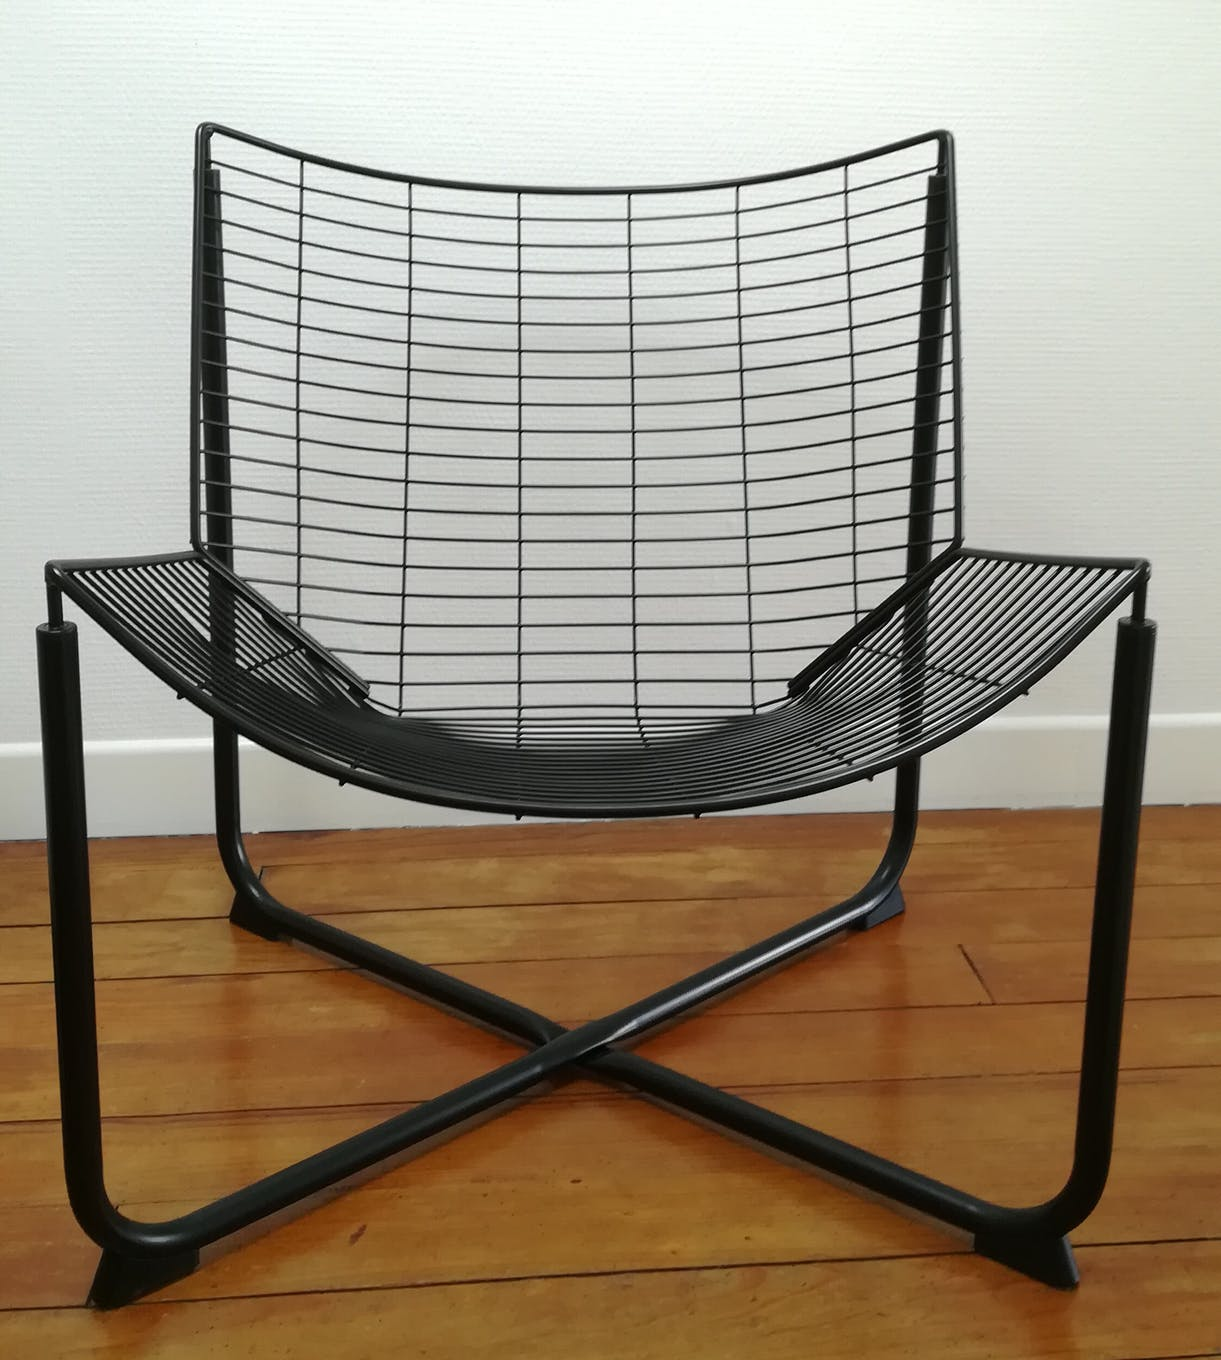 Set Giardino Rattan Ikea.Black Metal Armchair Design By Niels Gammelgard New Edition Ikea